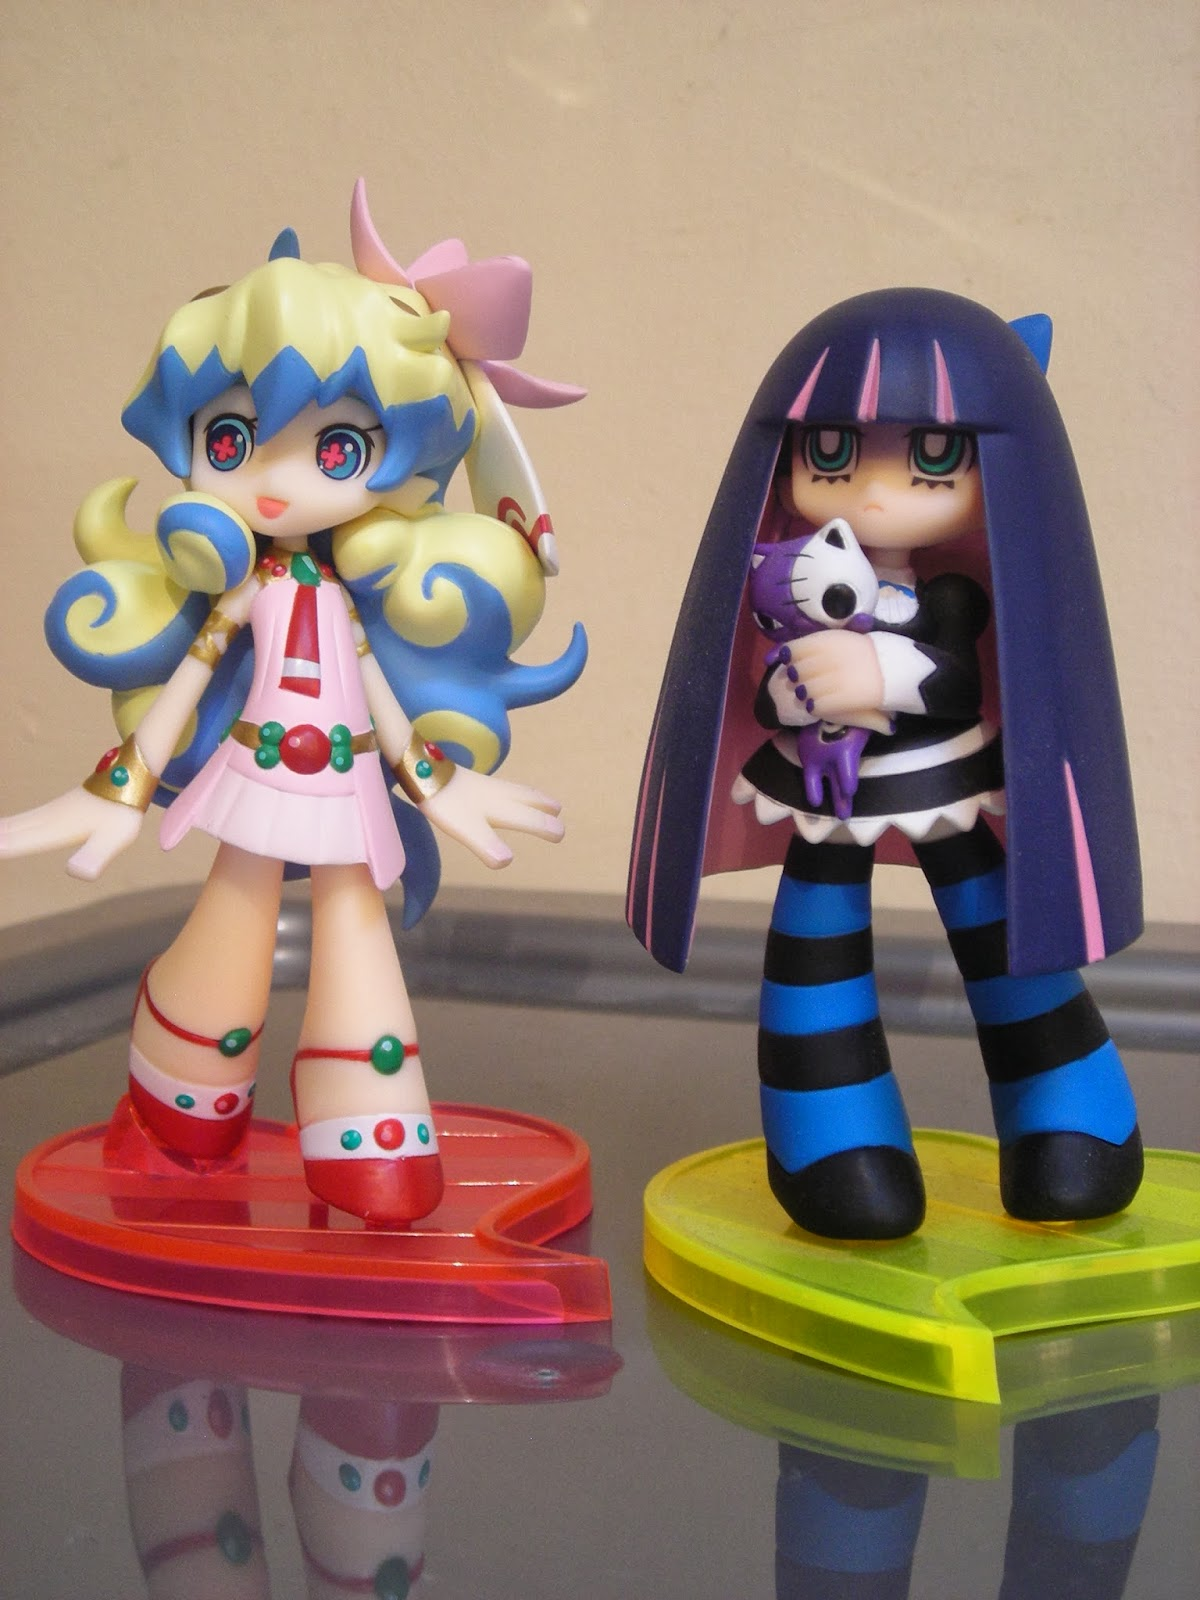 Phat Panty and Stocking with Heaven Coin Angel ver Twin Pack figure /&